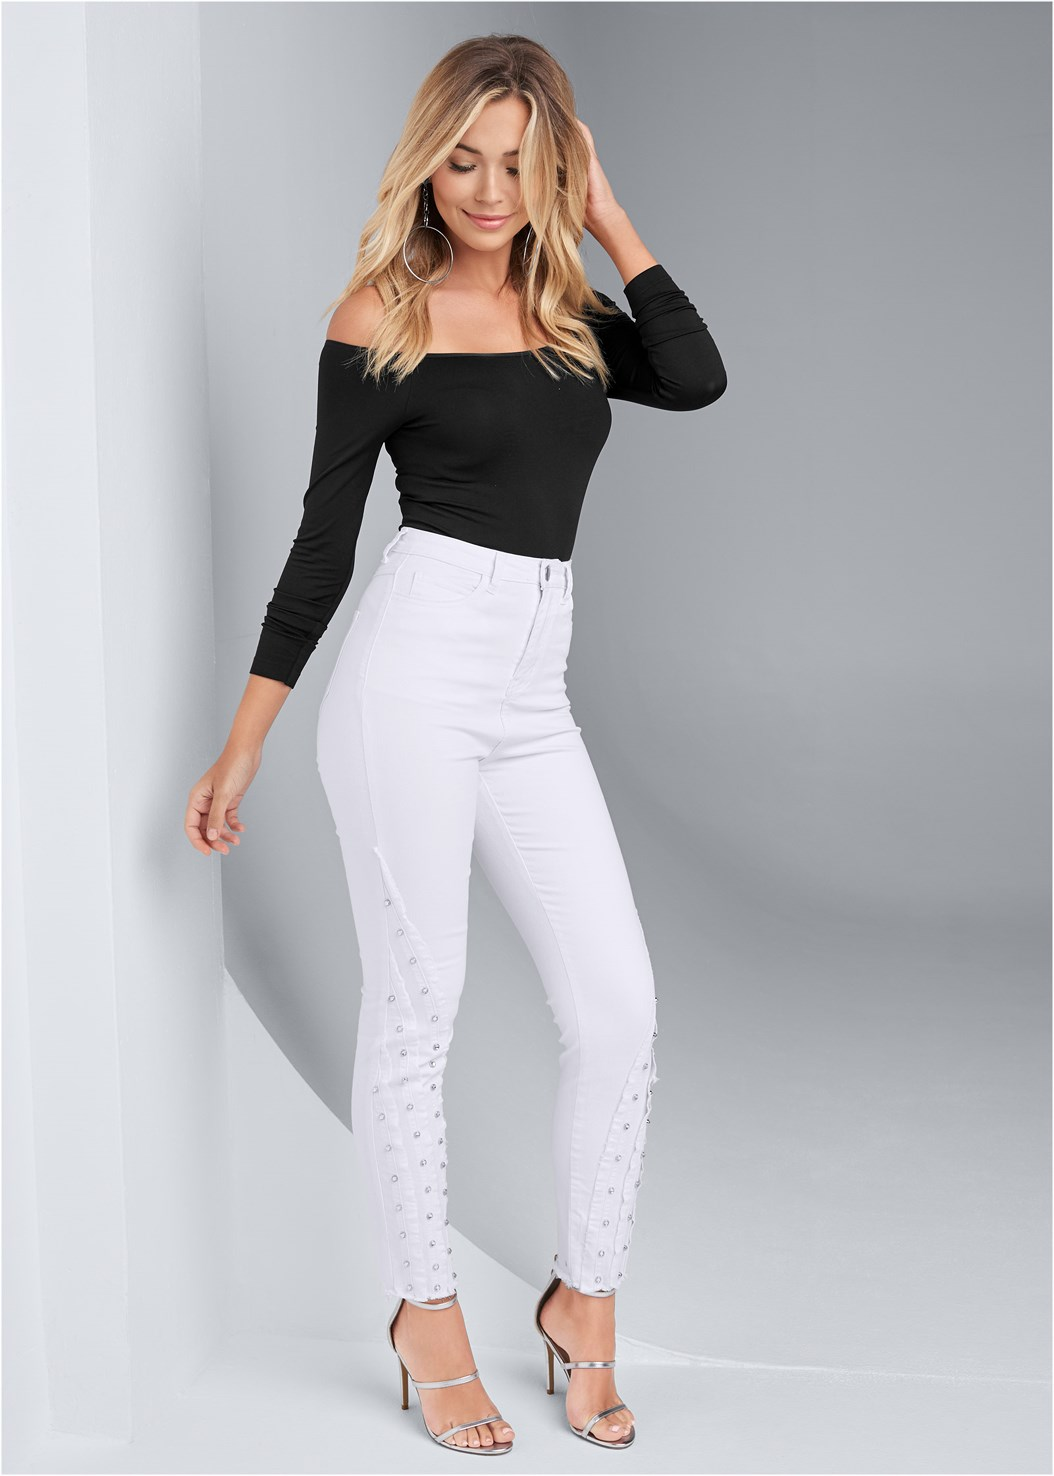 Jewel Studded Straight Leg Jeans,Off The Shoulder Top,High Heel Strappy Sandals,Hoop Earrings